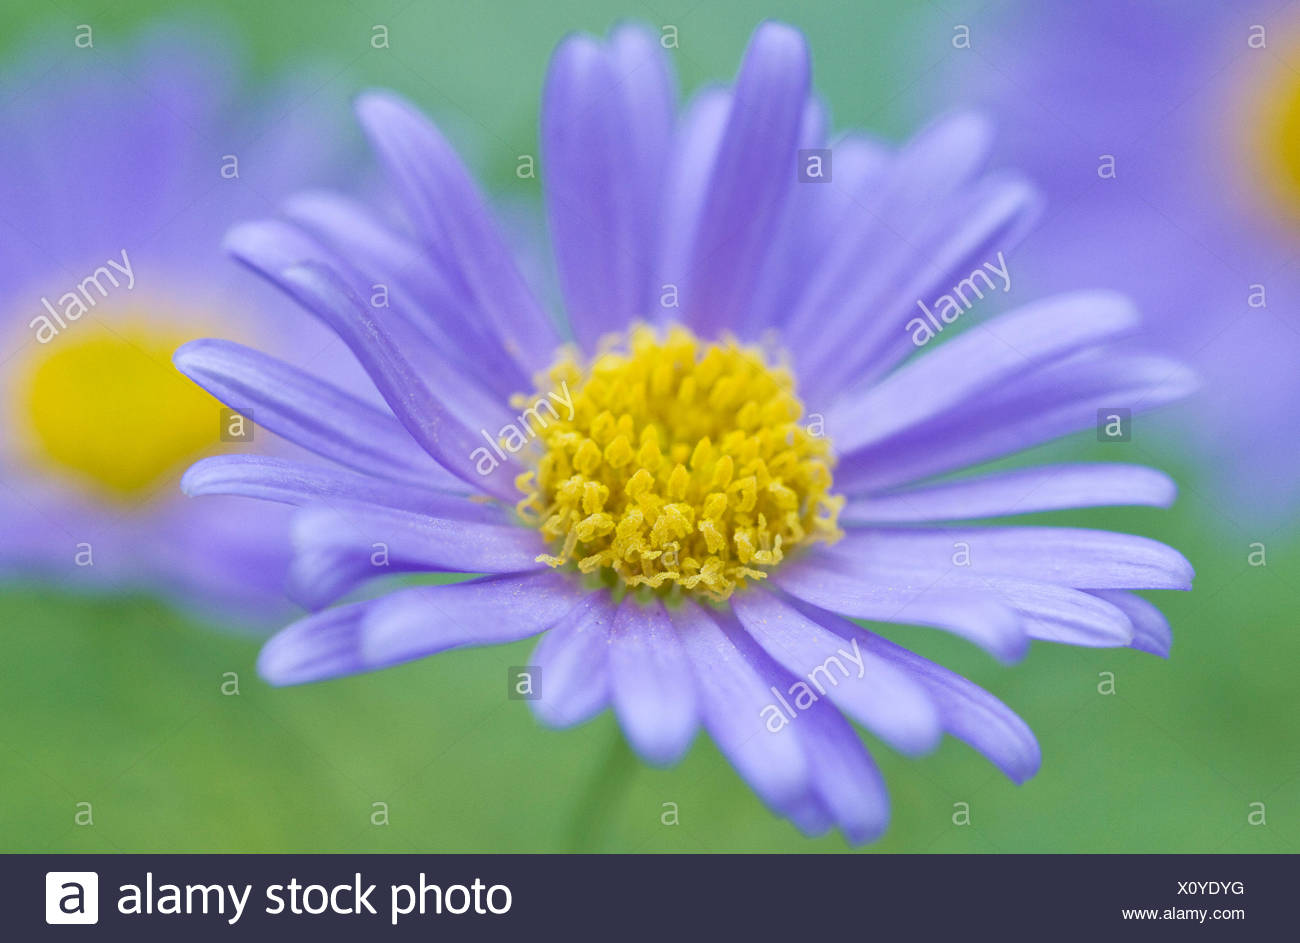 Portrait close up study of single flower detail of small bright blue portrait close up study of single flower detail of small bright blue daisy like flowers annual brachycome blue starswan river daisy izmirmasajfo